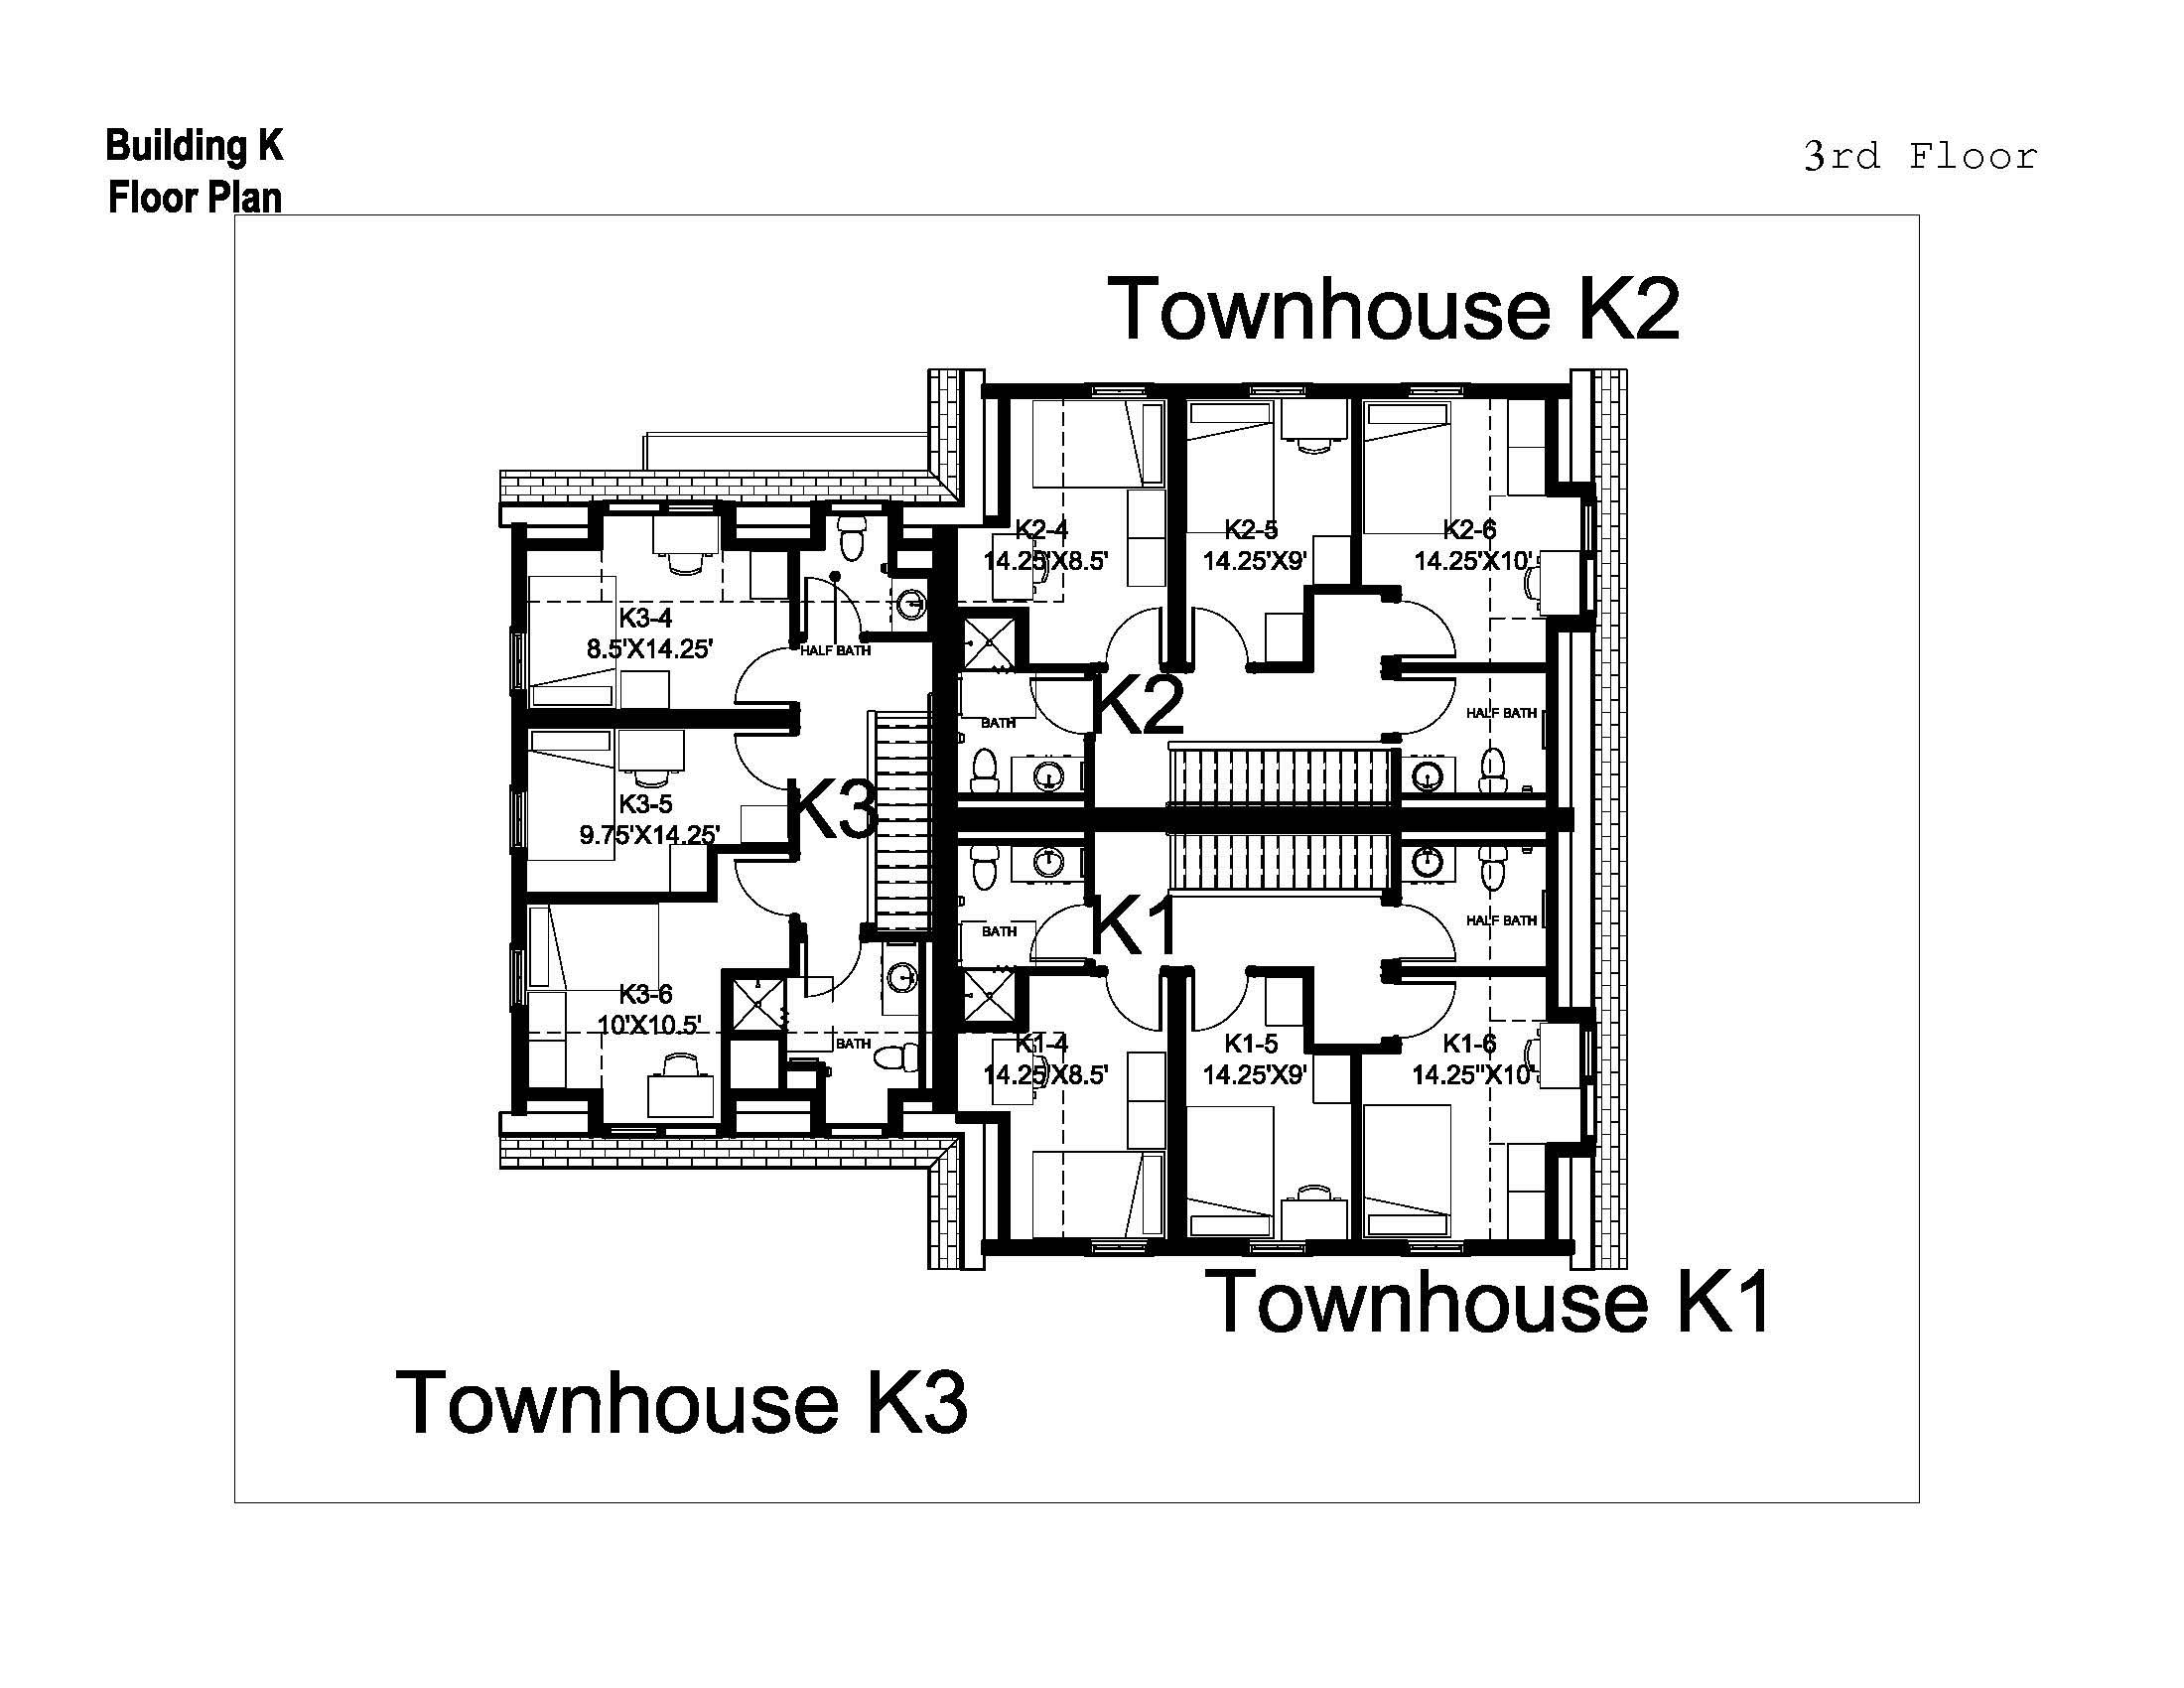 Nigerian semi detached house plans one level townhome floor plan nigerian semi detached house plans one level townhome floor plan for duplex jameslax Gallery